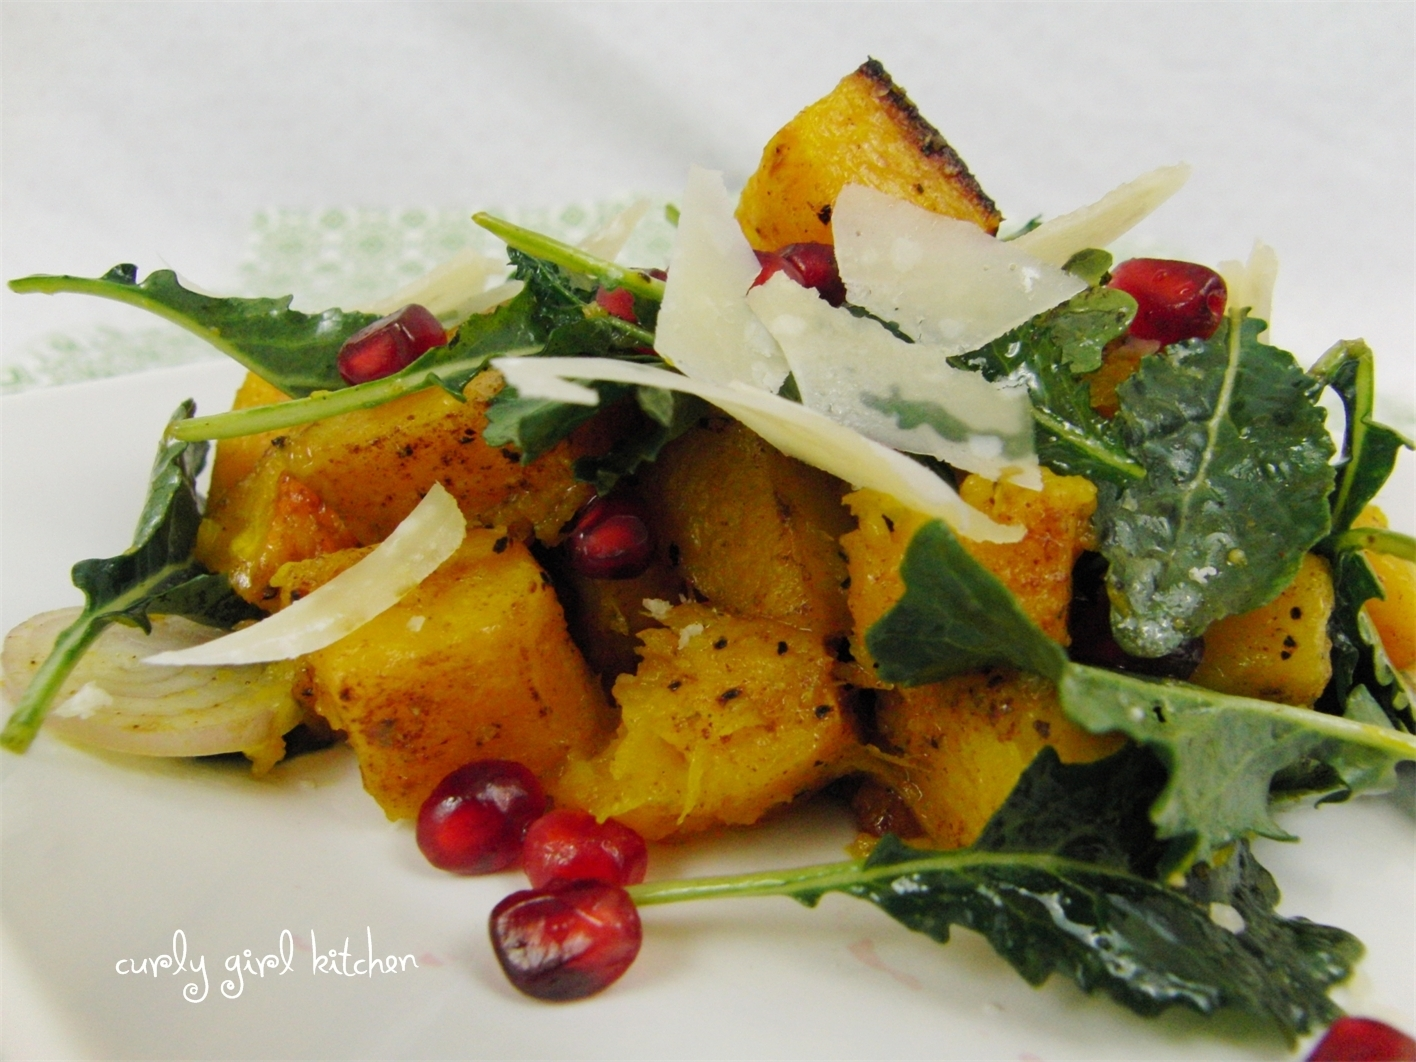 Winter Squash Salad with Pomegranate Arils and Wilted Greens